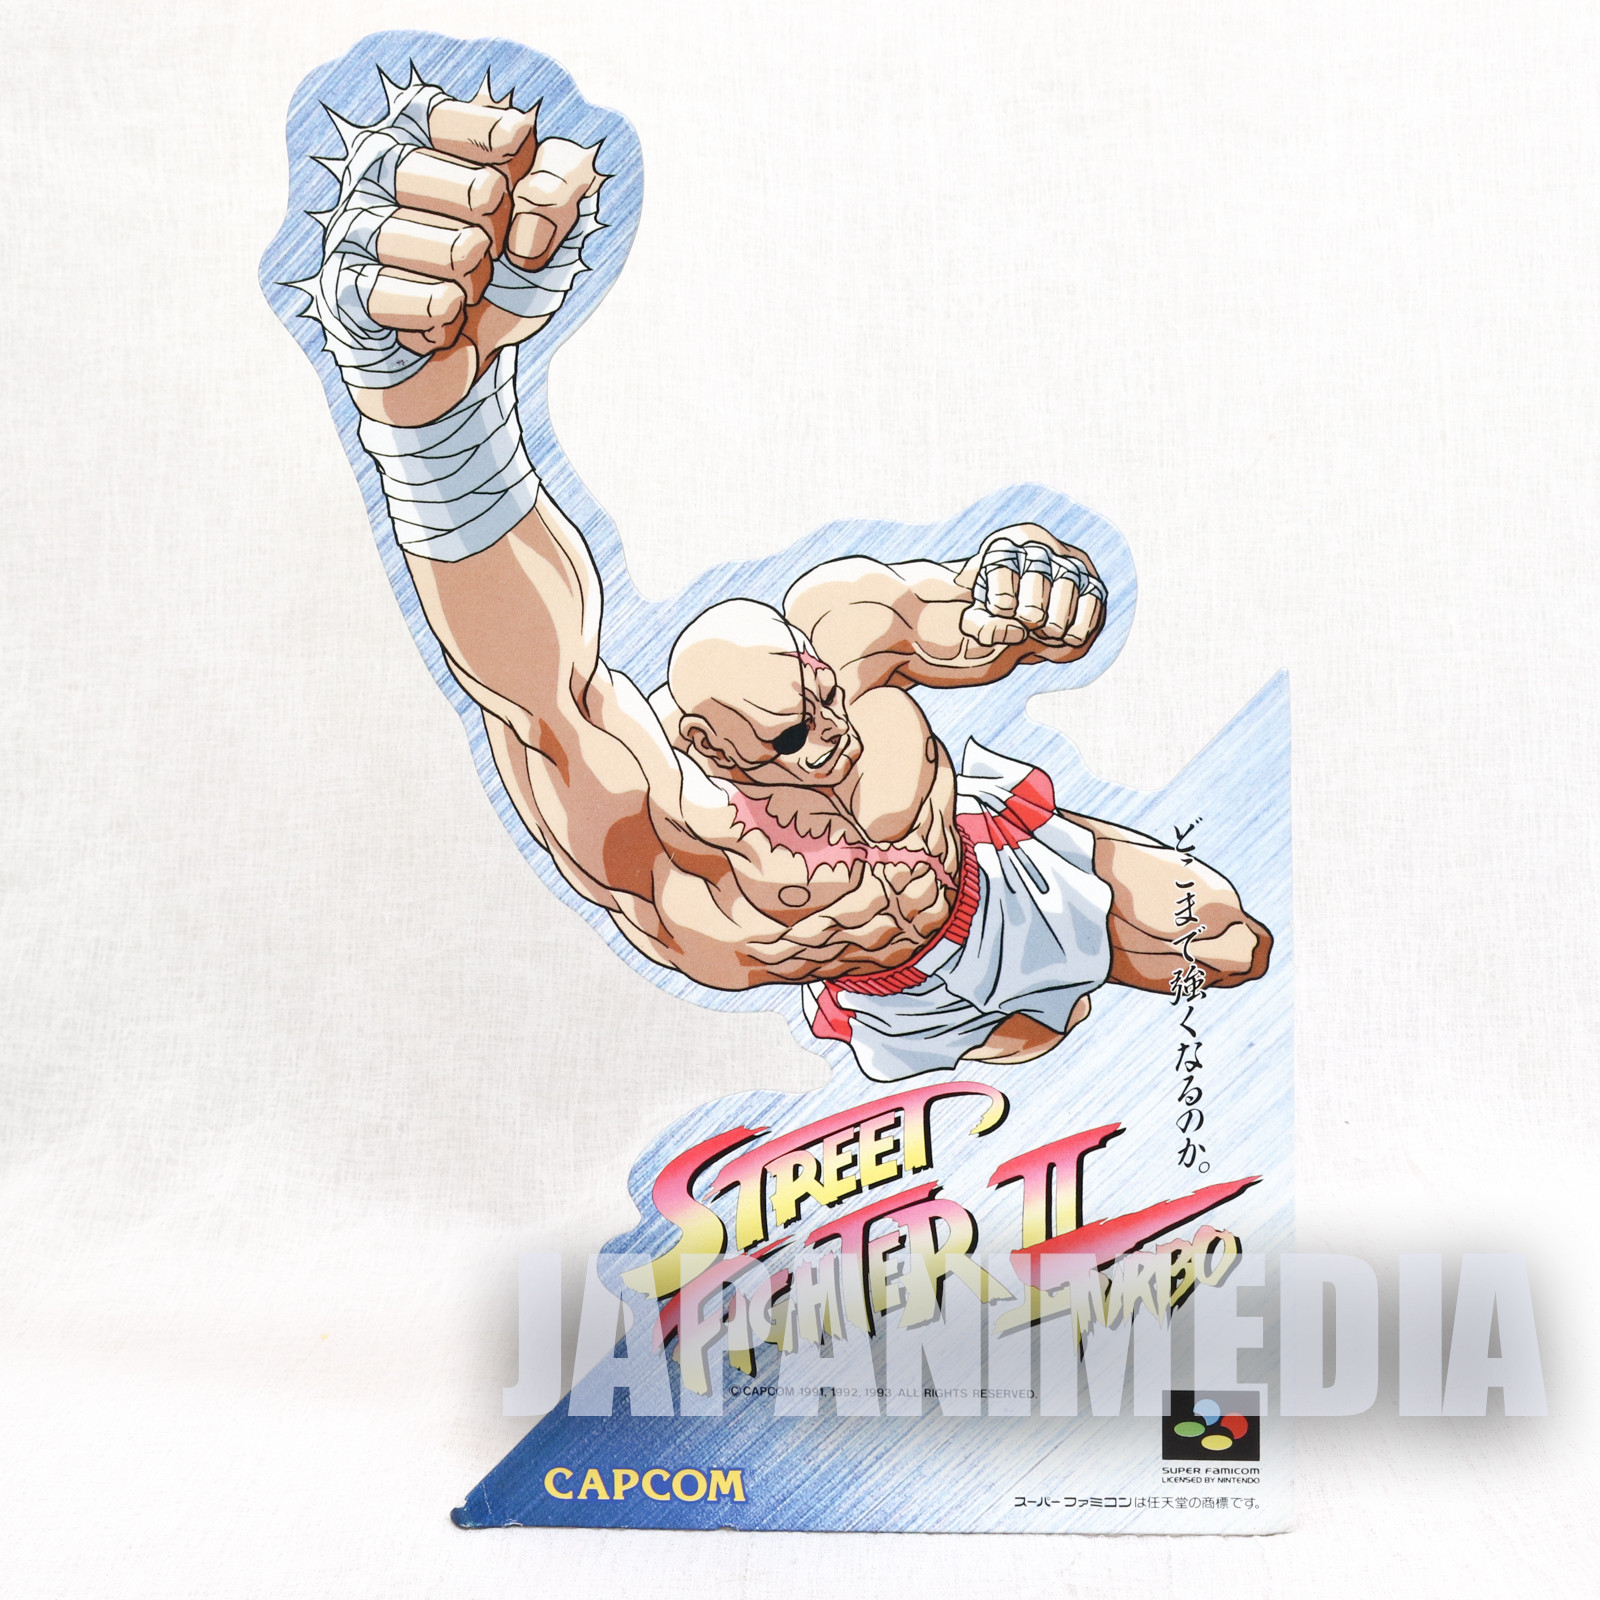 Retro Street Fighter Turbo Sagat Super Famicom Promotional POP Stand Panel